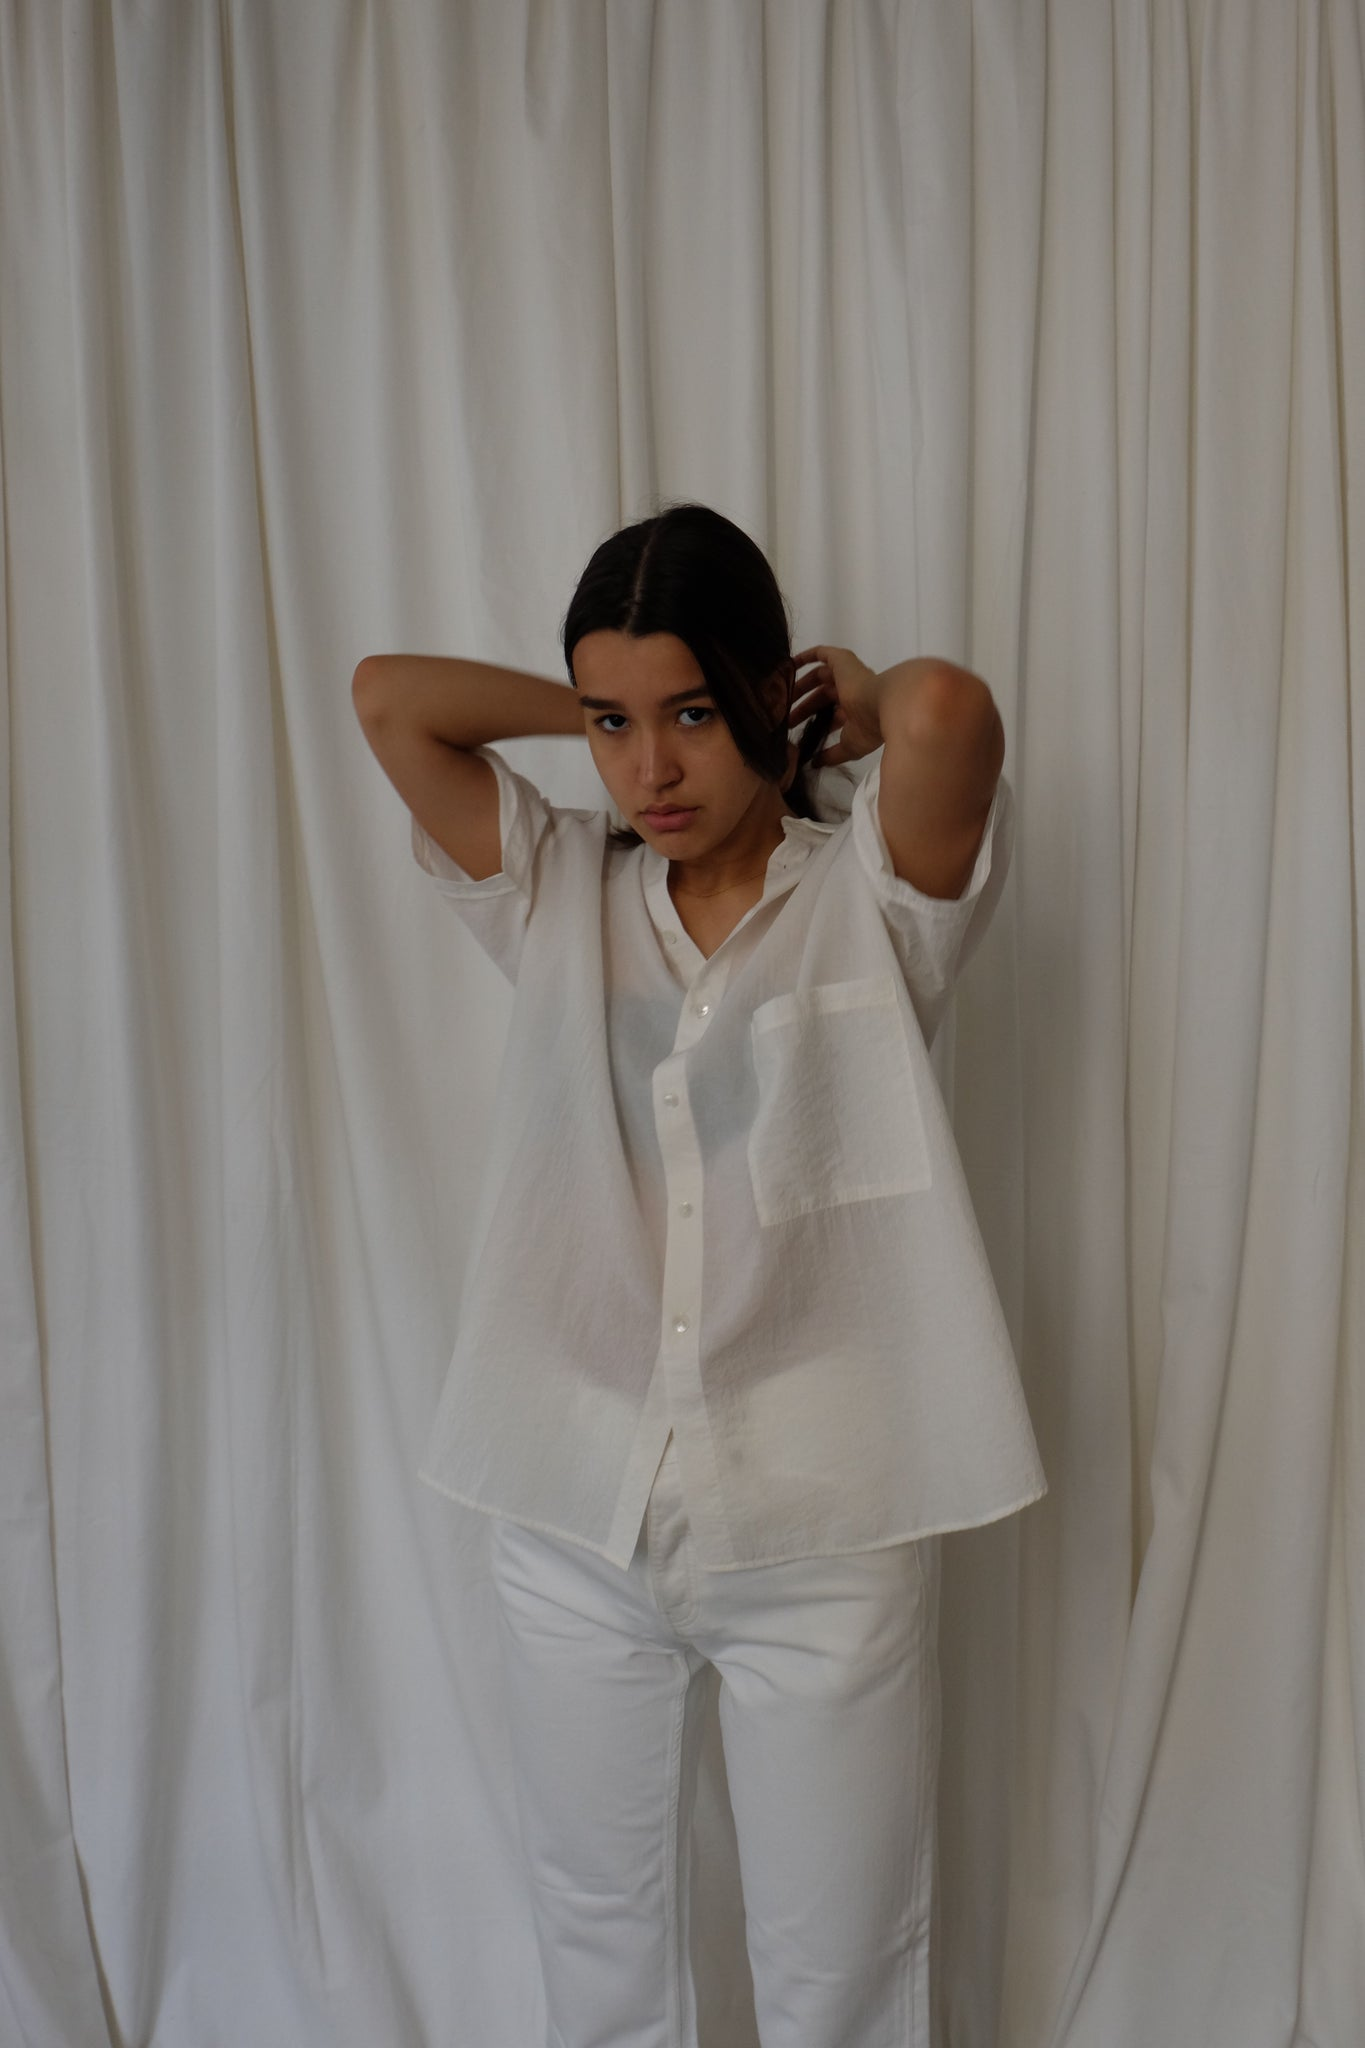 ELMA SHORTSLEEVE OFF-WHITE BY HOPE - BEYOND STUDIOS